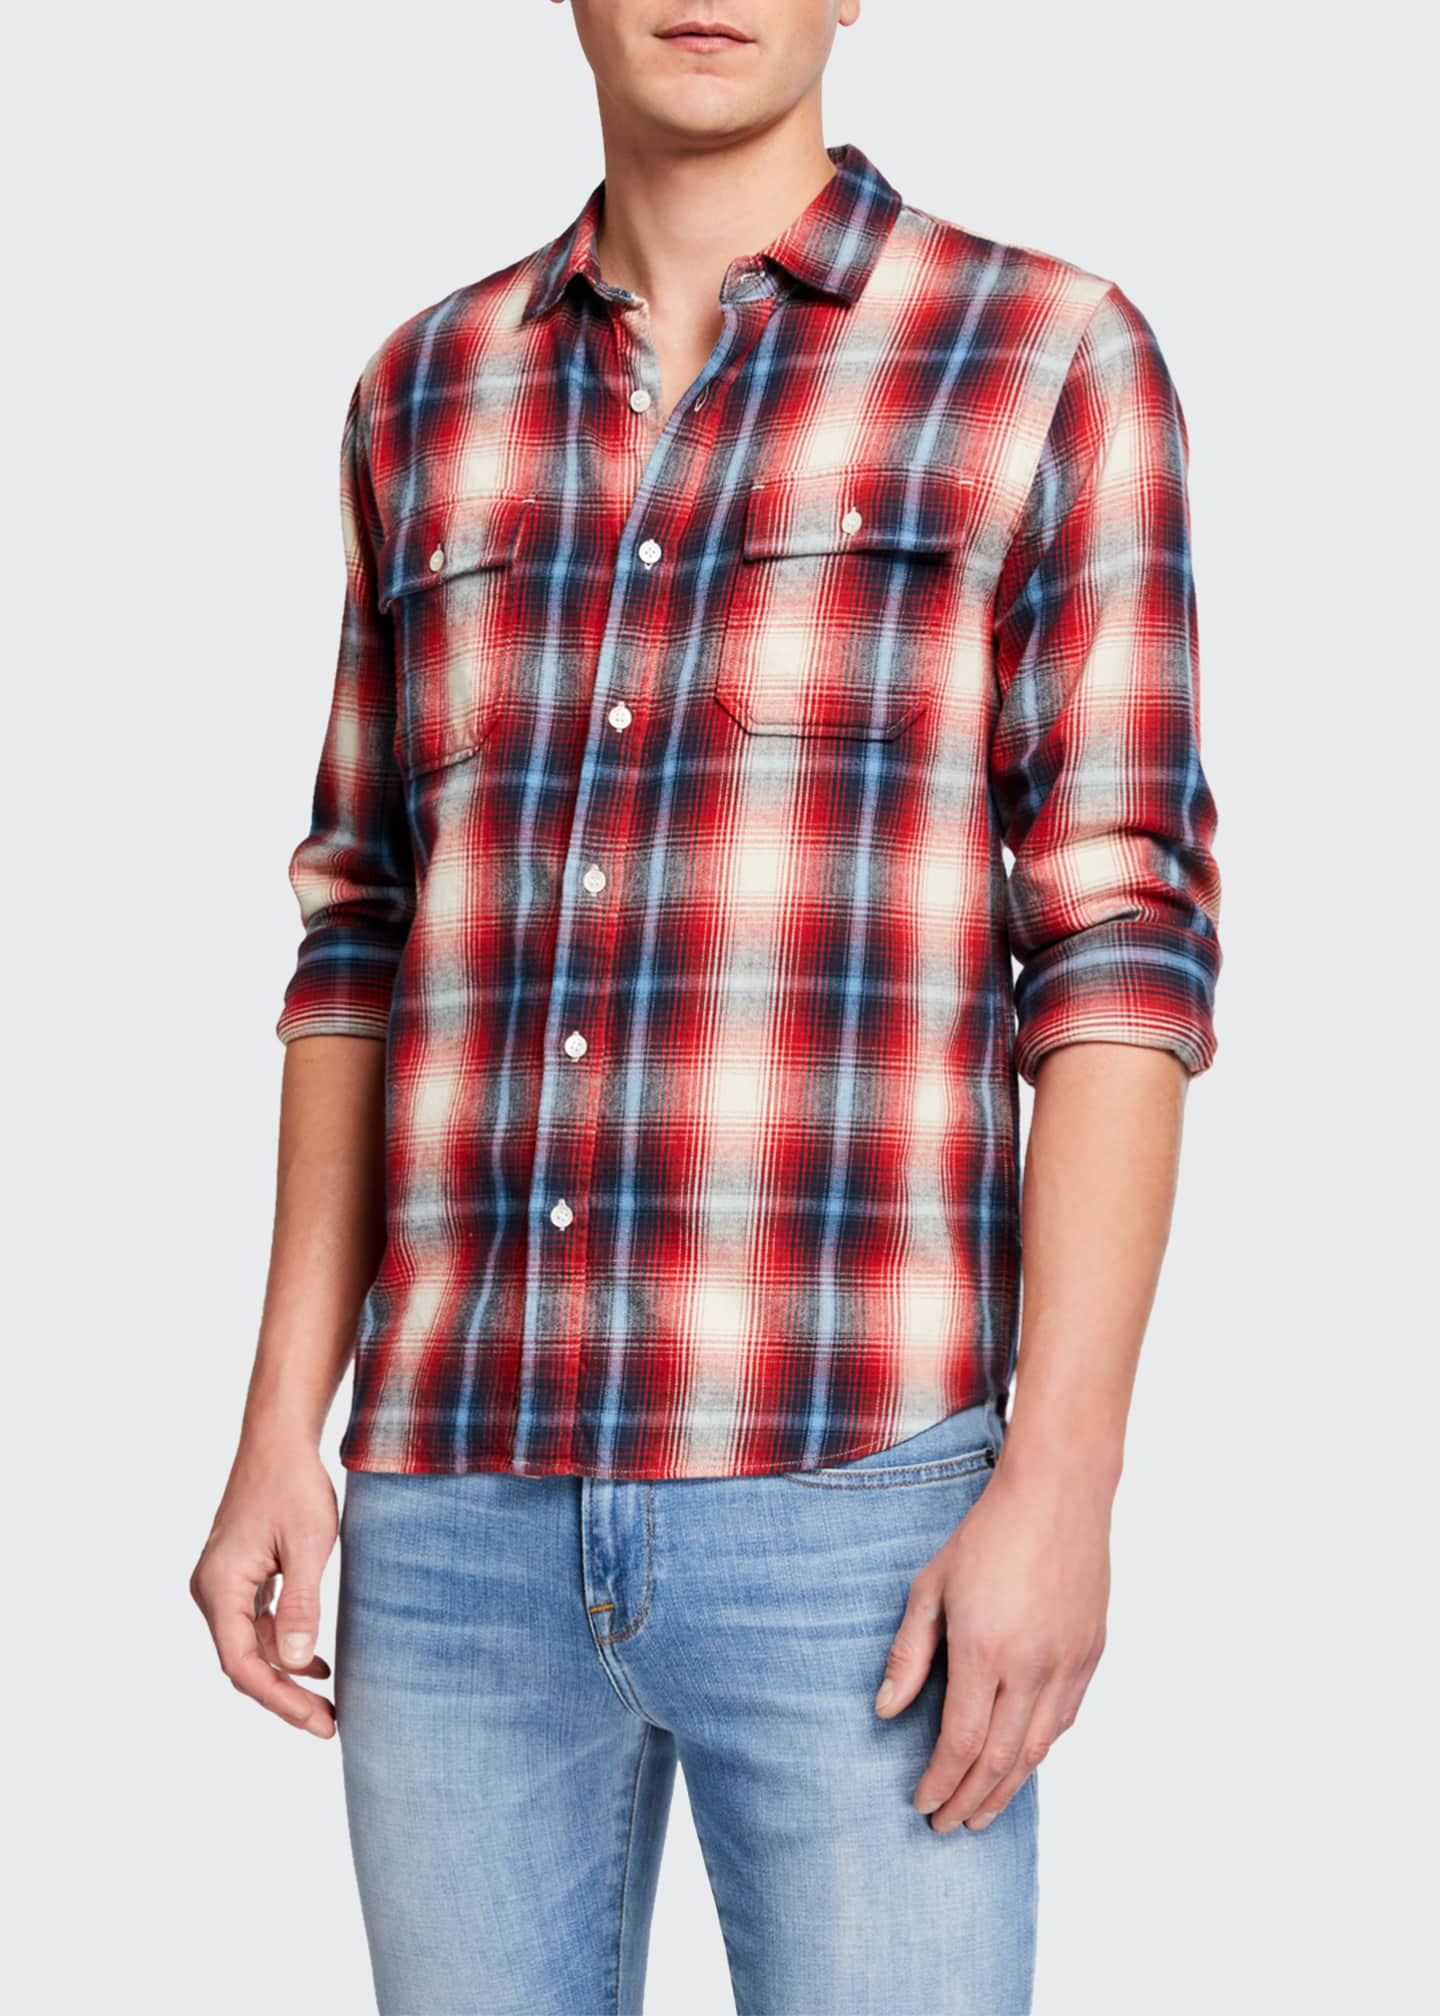 Men's Double-Pocket Plaid Twill Sport Shirt